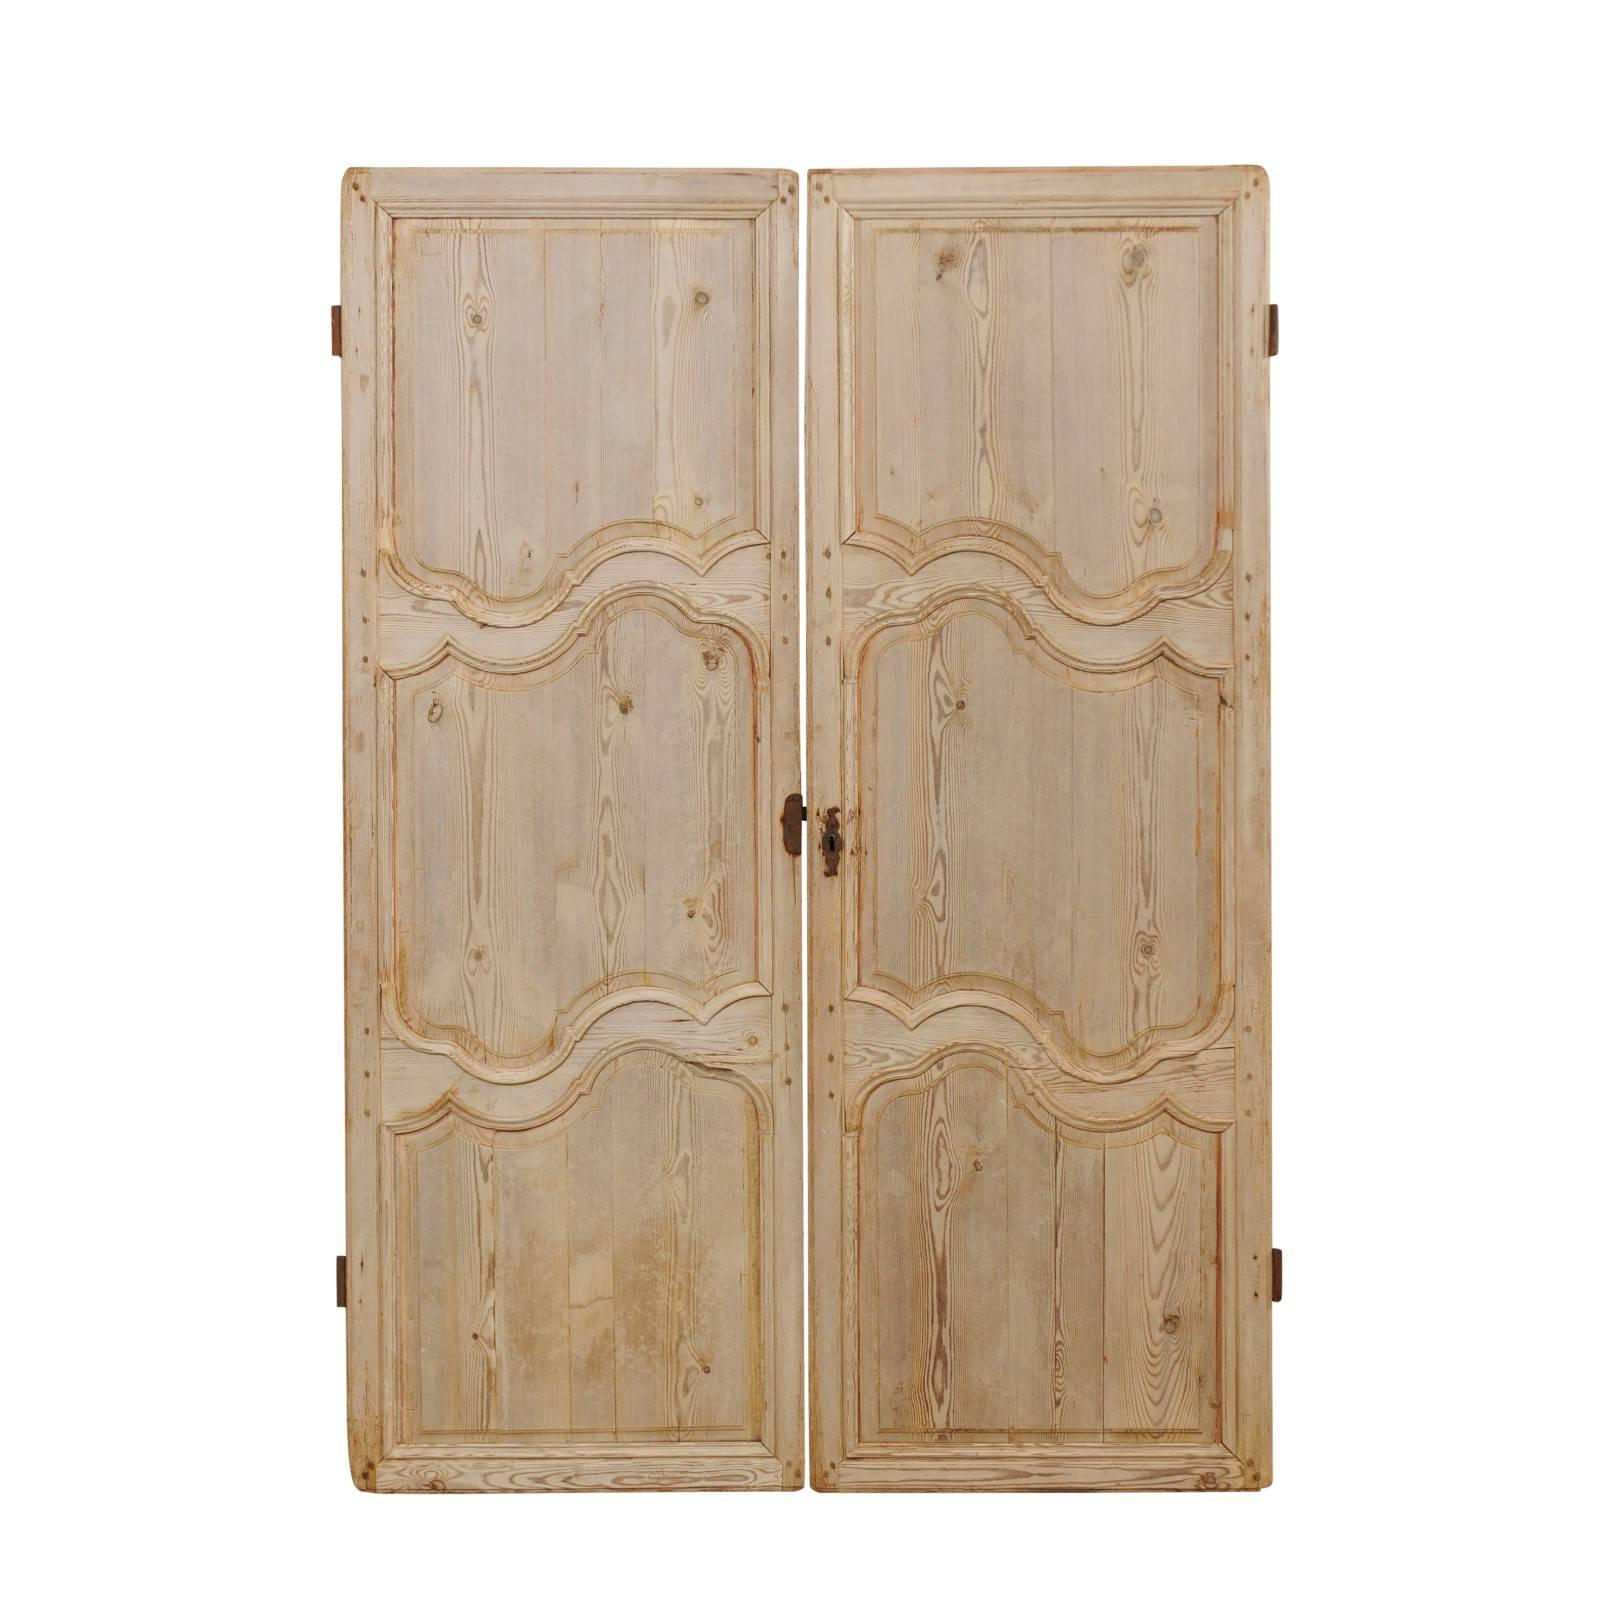 Pair of French 19th Century Bleached Wood Doors with Nice Scalloped Carvings  sc 1 st  1stDibs & Antique and Vintage Doors and Gates - 1151 For Sale at 1stdibs